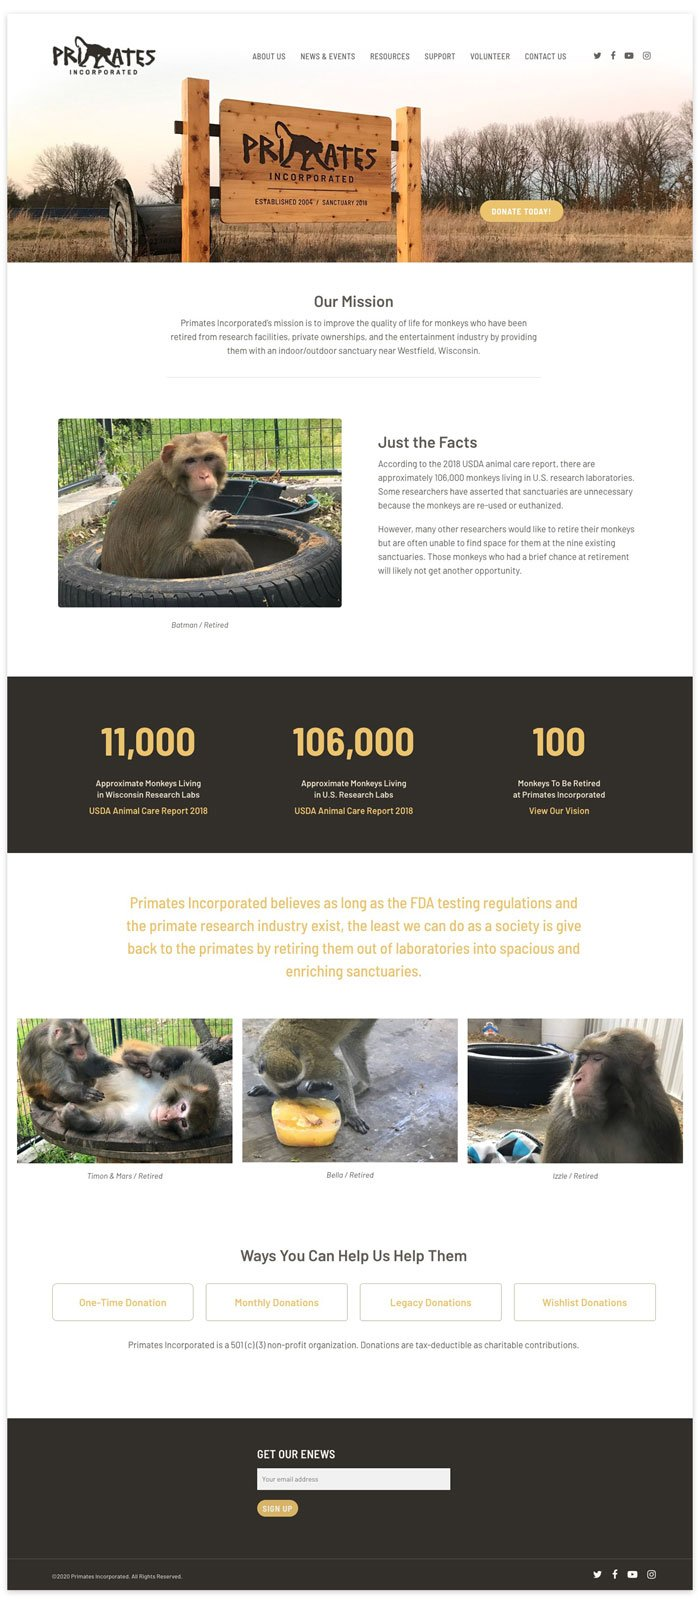 Primates Incorporated website home page layout